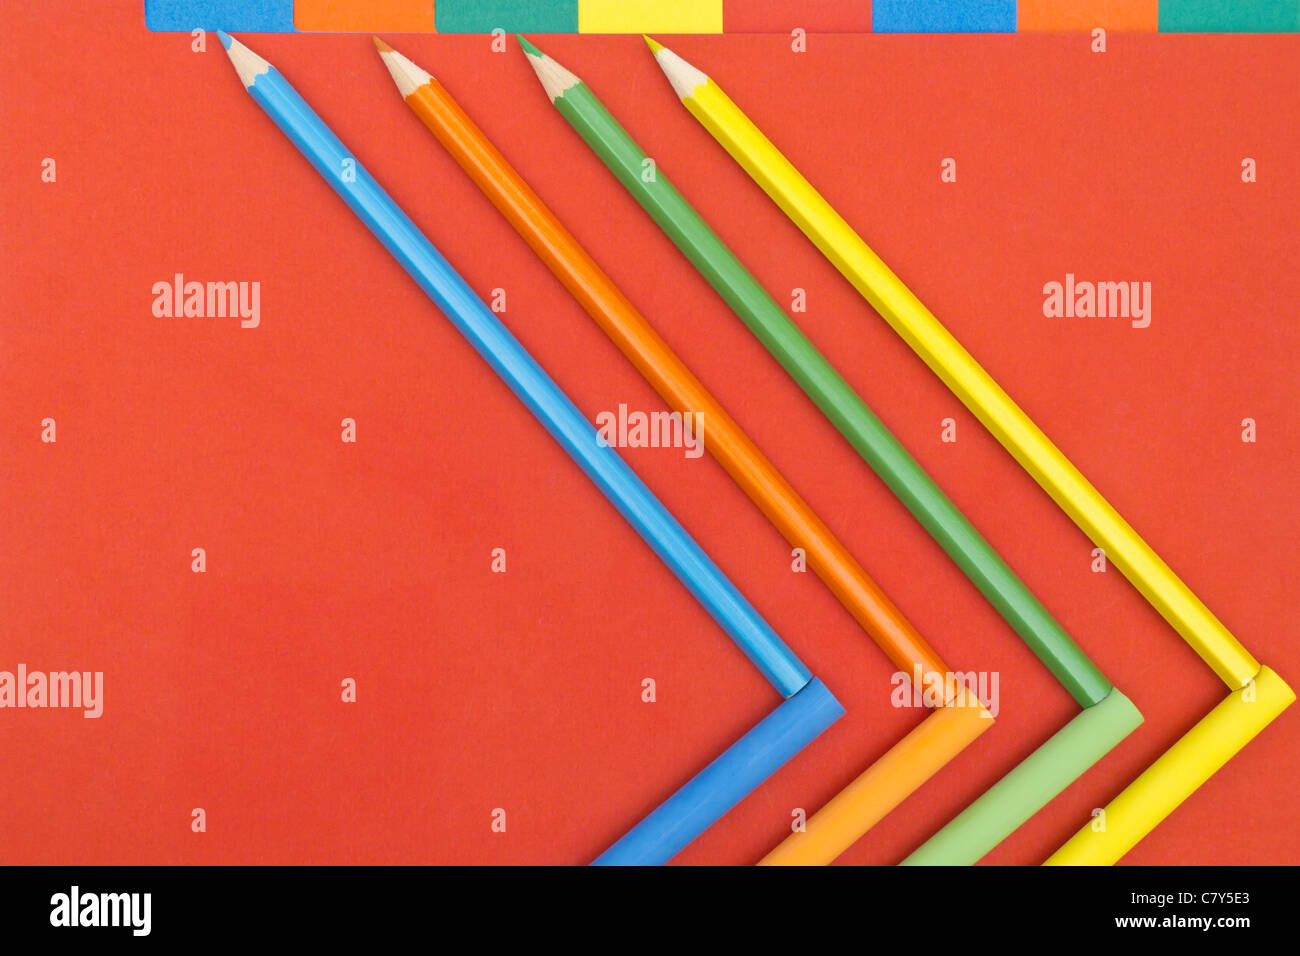 Colorful School Supplies - Stock Image